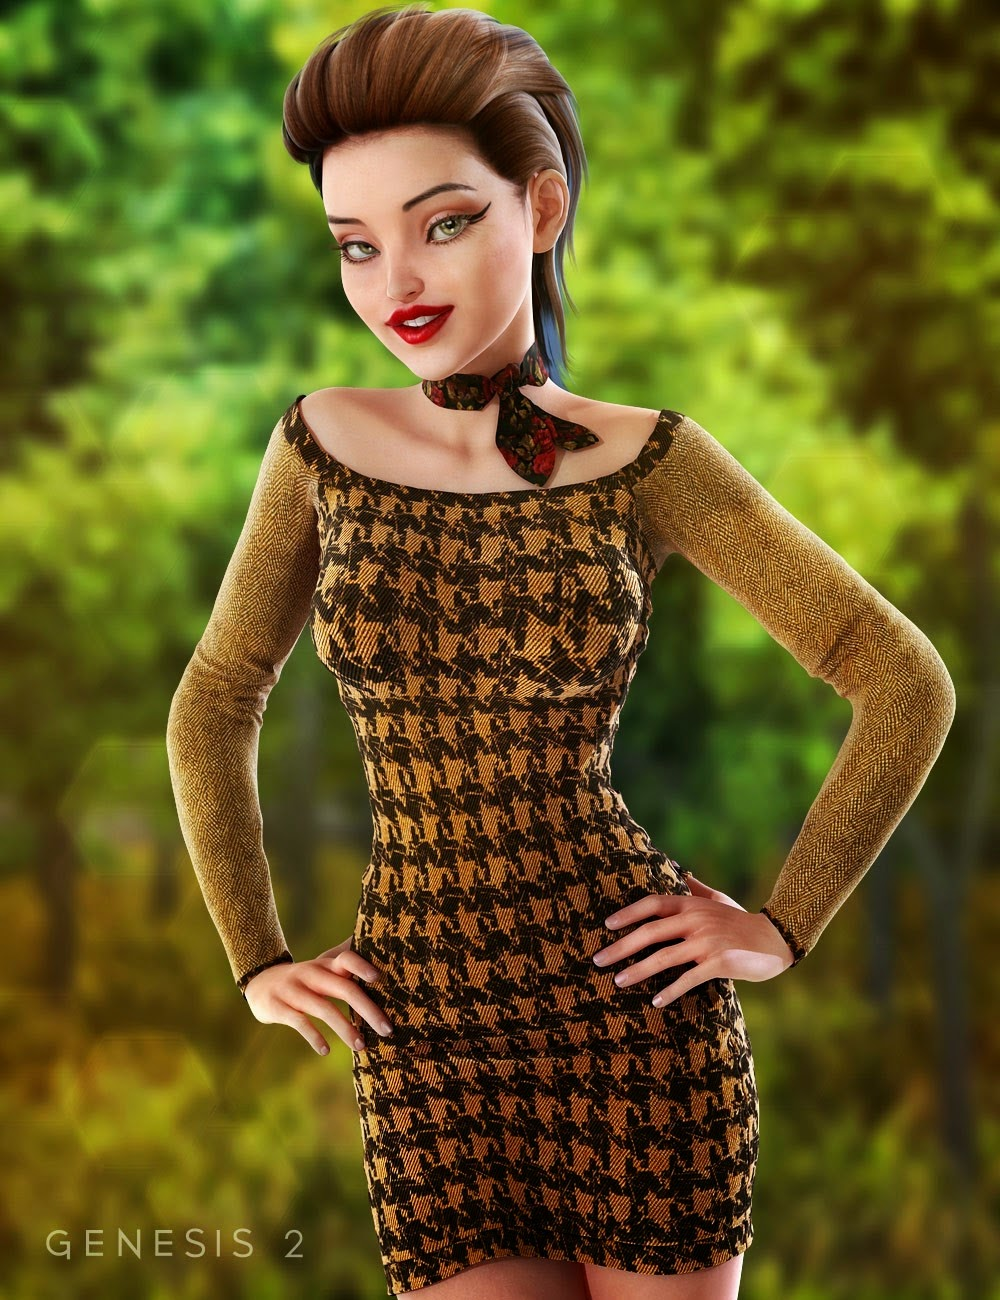 DAZ STUDIO - November Textures for Autumn